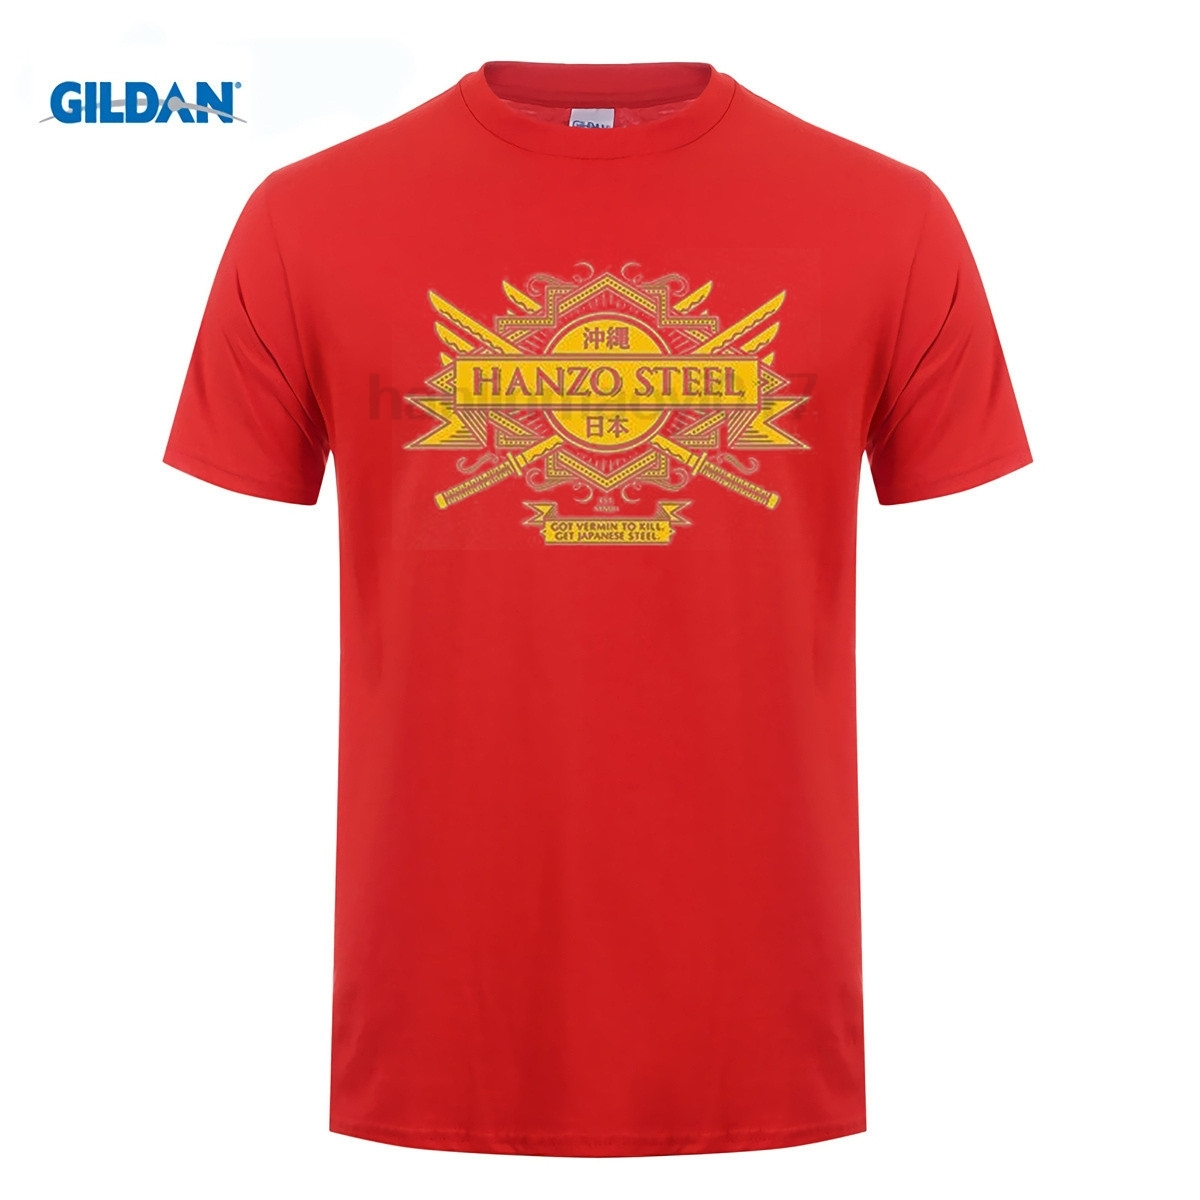 GILDAN Hanzo Steel T-Shirt 100% Cotton Kill Bill Inspired Quentin Tarantino Sword Cheap Sale 100 % T  For Boys